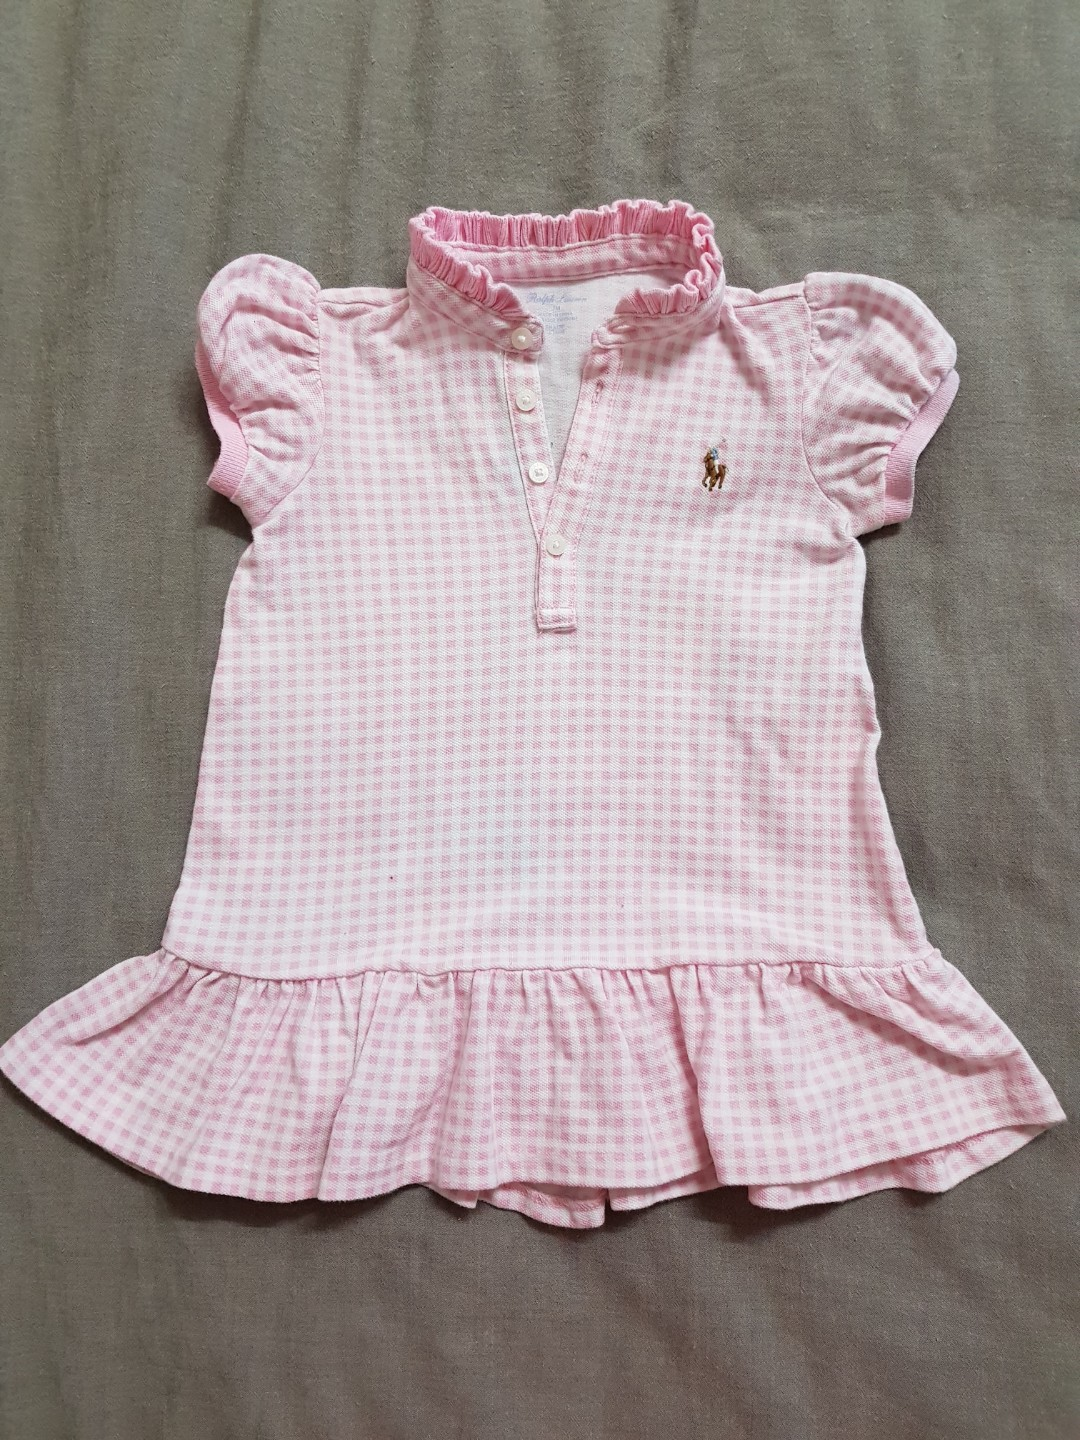 ae37f8962d2b8 Polo Ralph Lauren Baby Girl Dress